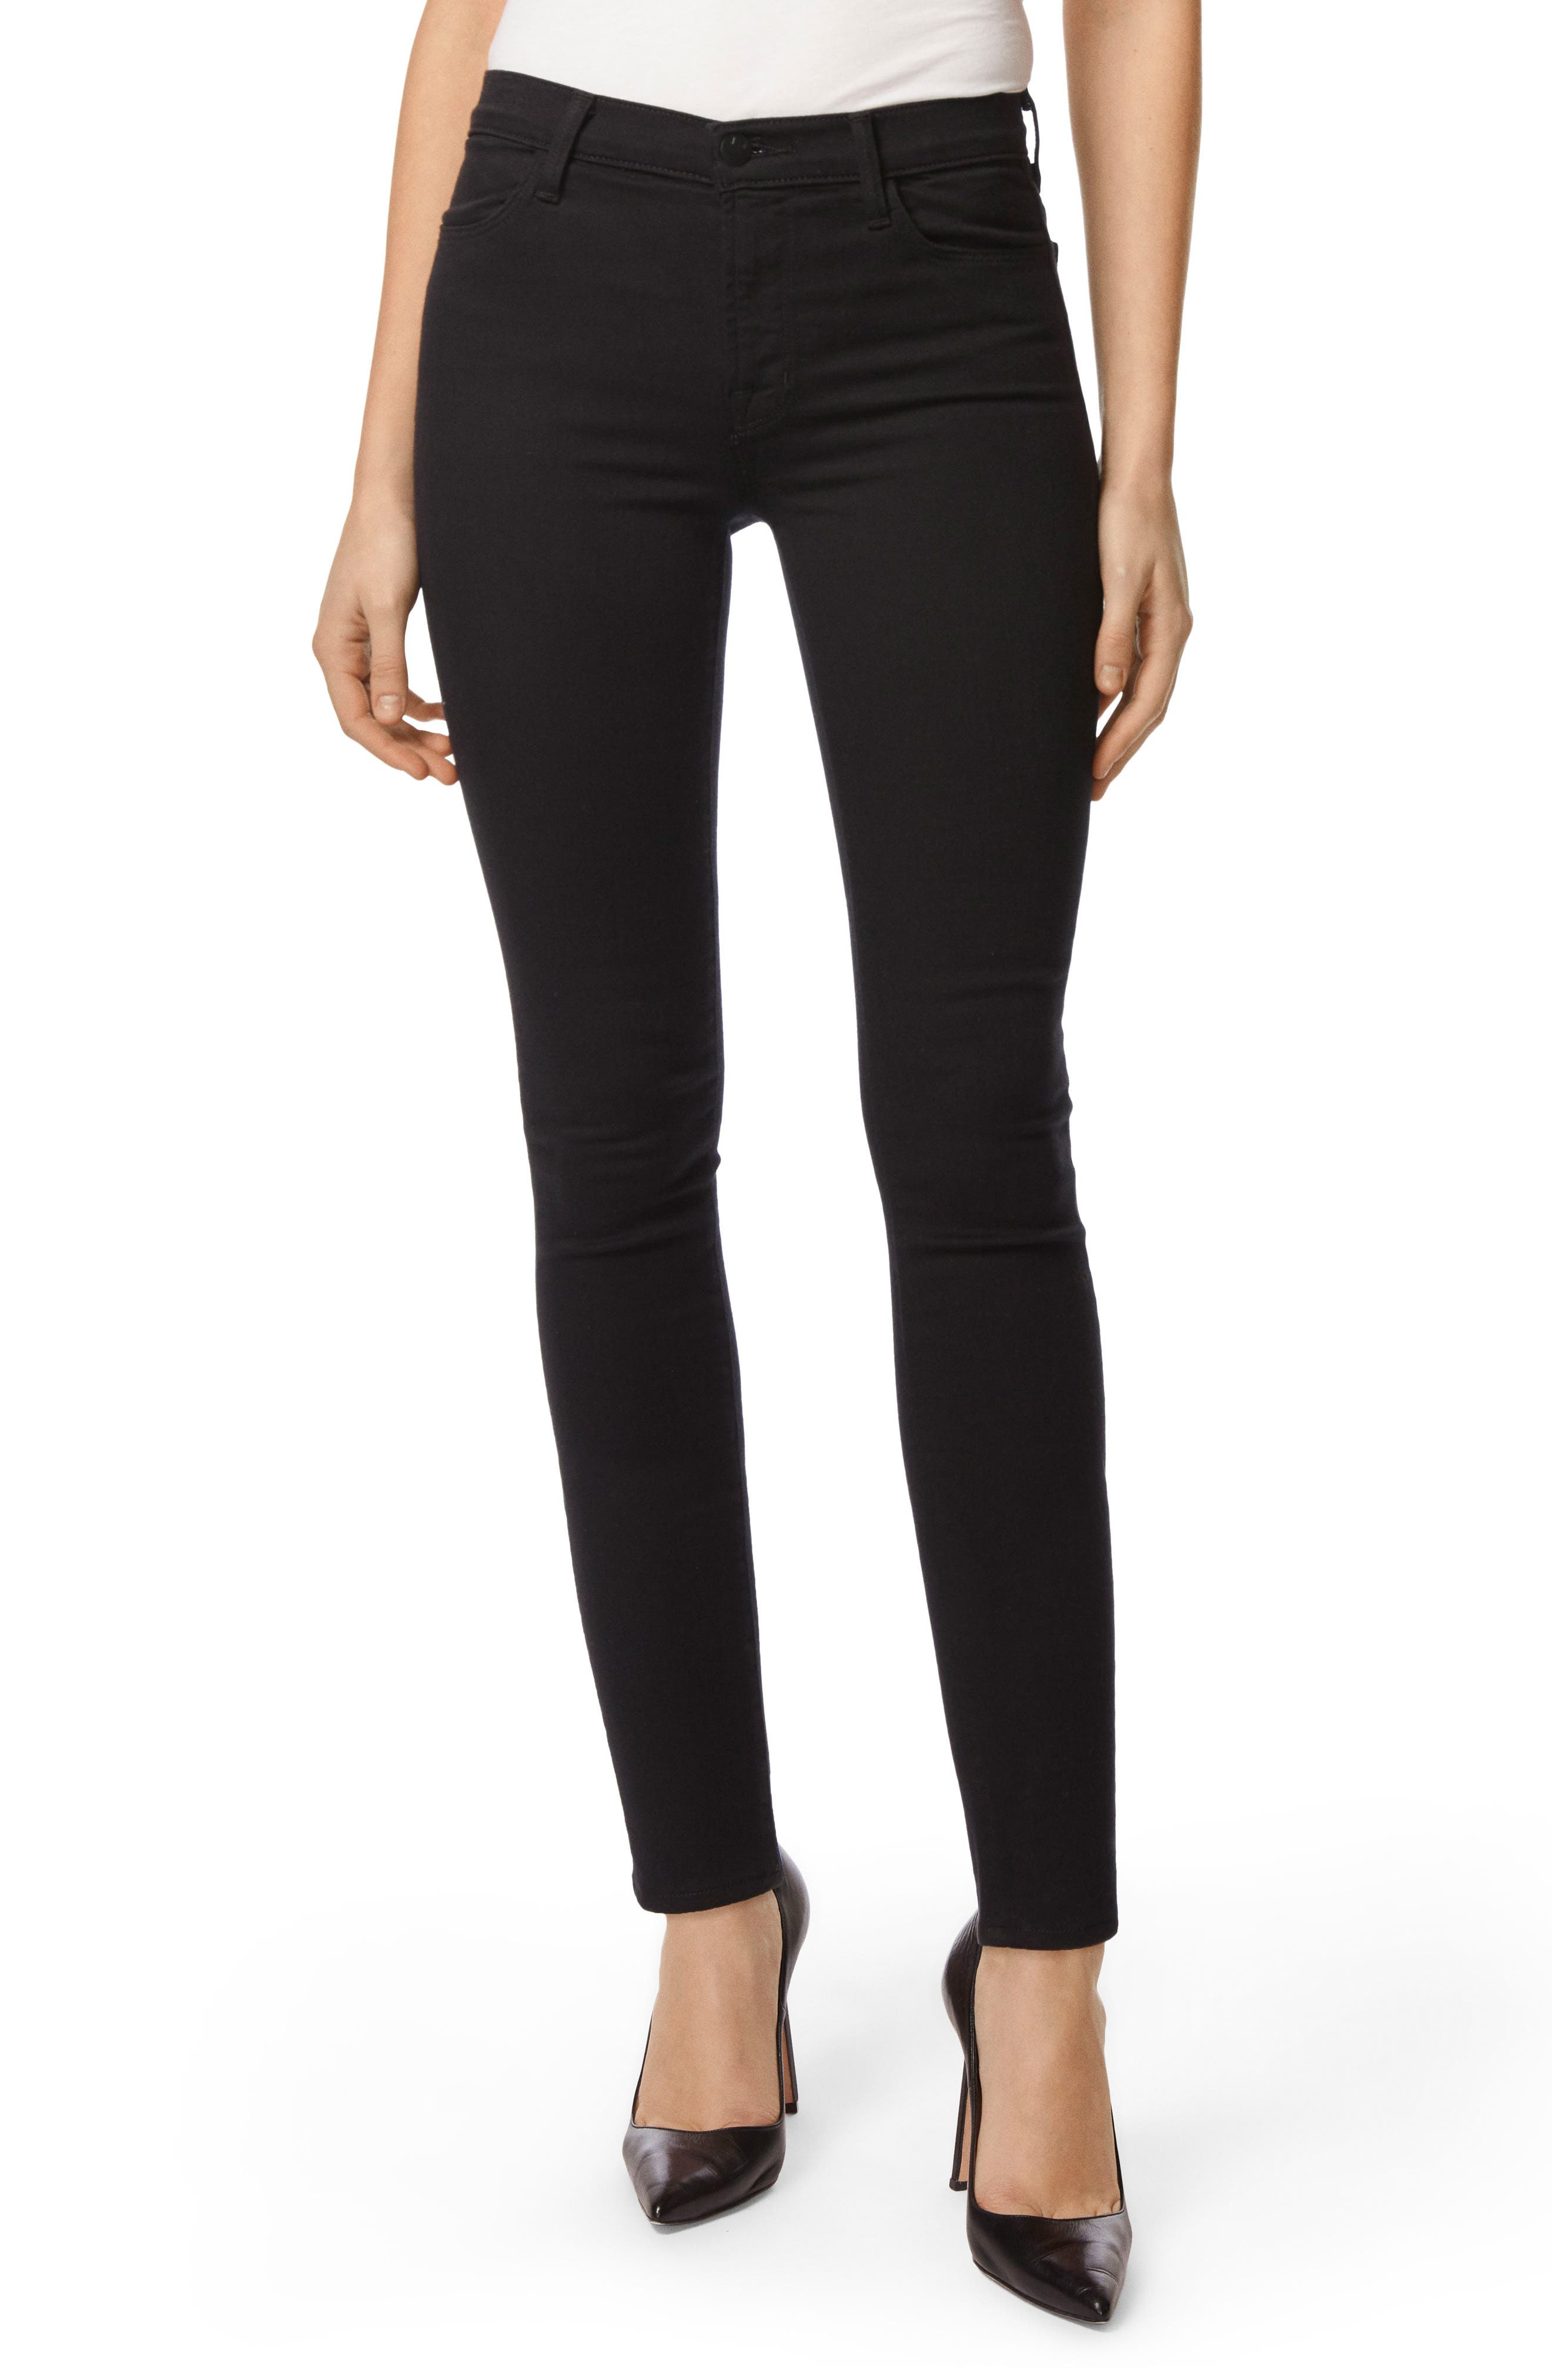 Alternate Image 1 Selected - J Brand Maria High Waist Super Skinny Jeans (Seriously Black)